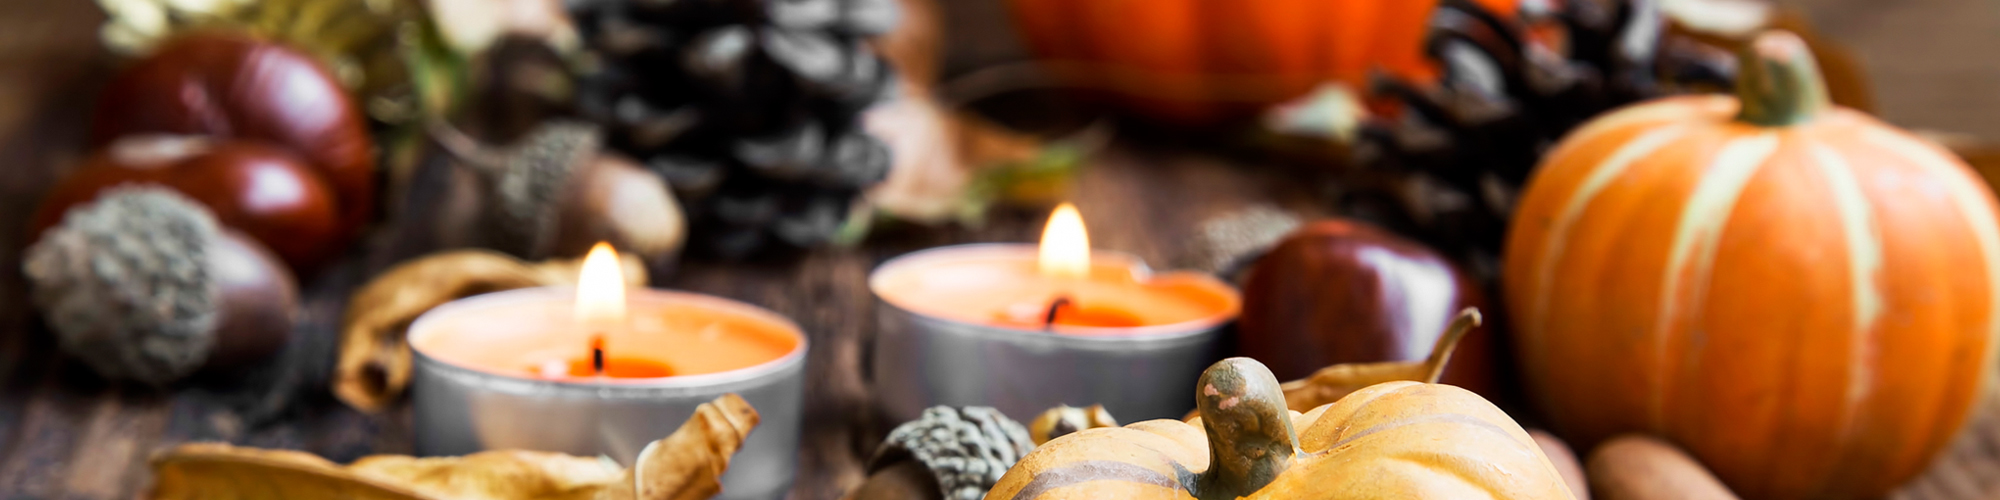 An assortment of Fall decorations, including pine cones, acorns, pumpkins, and orange candles